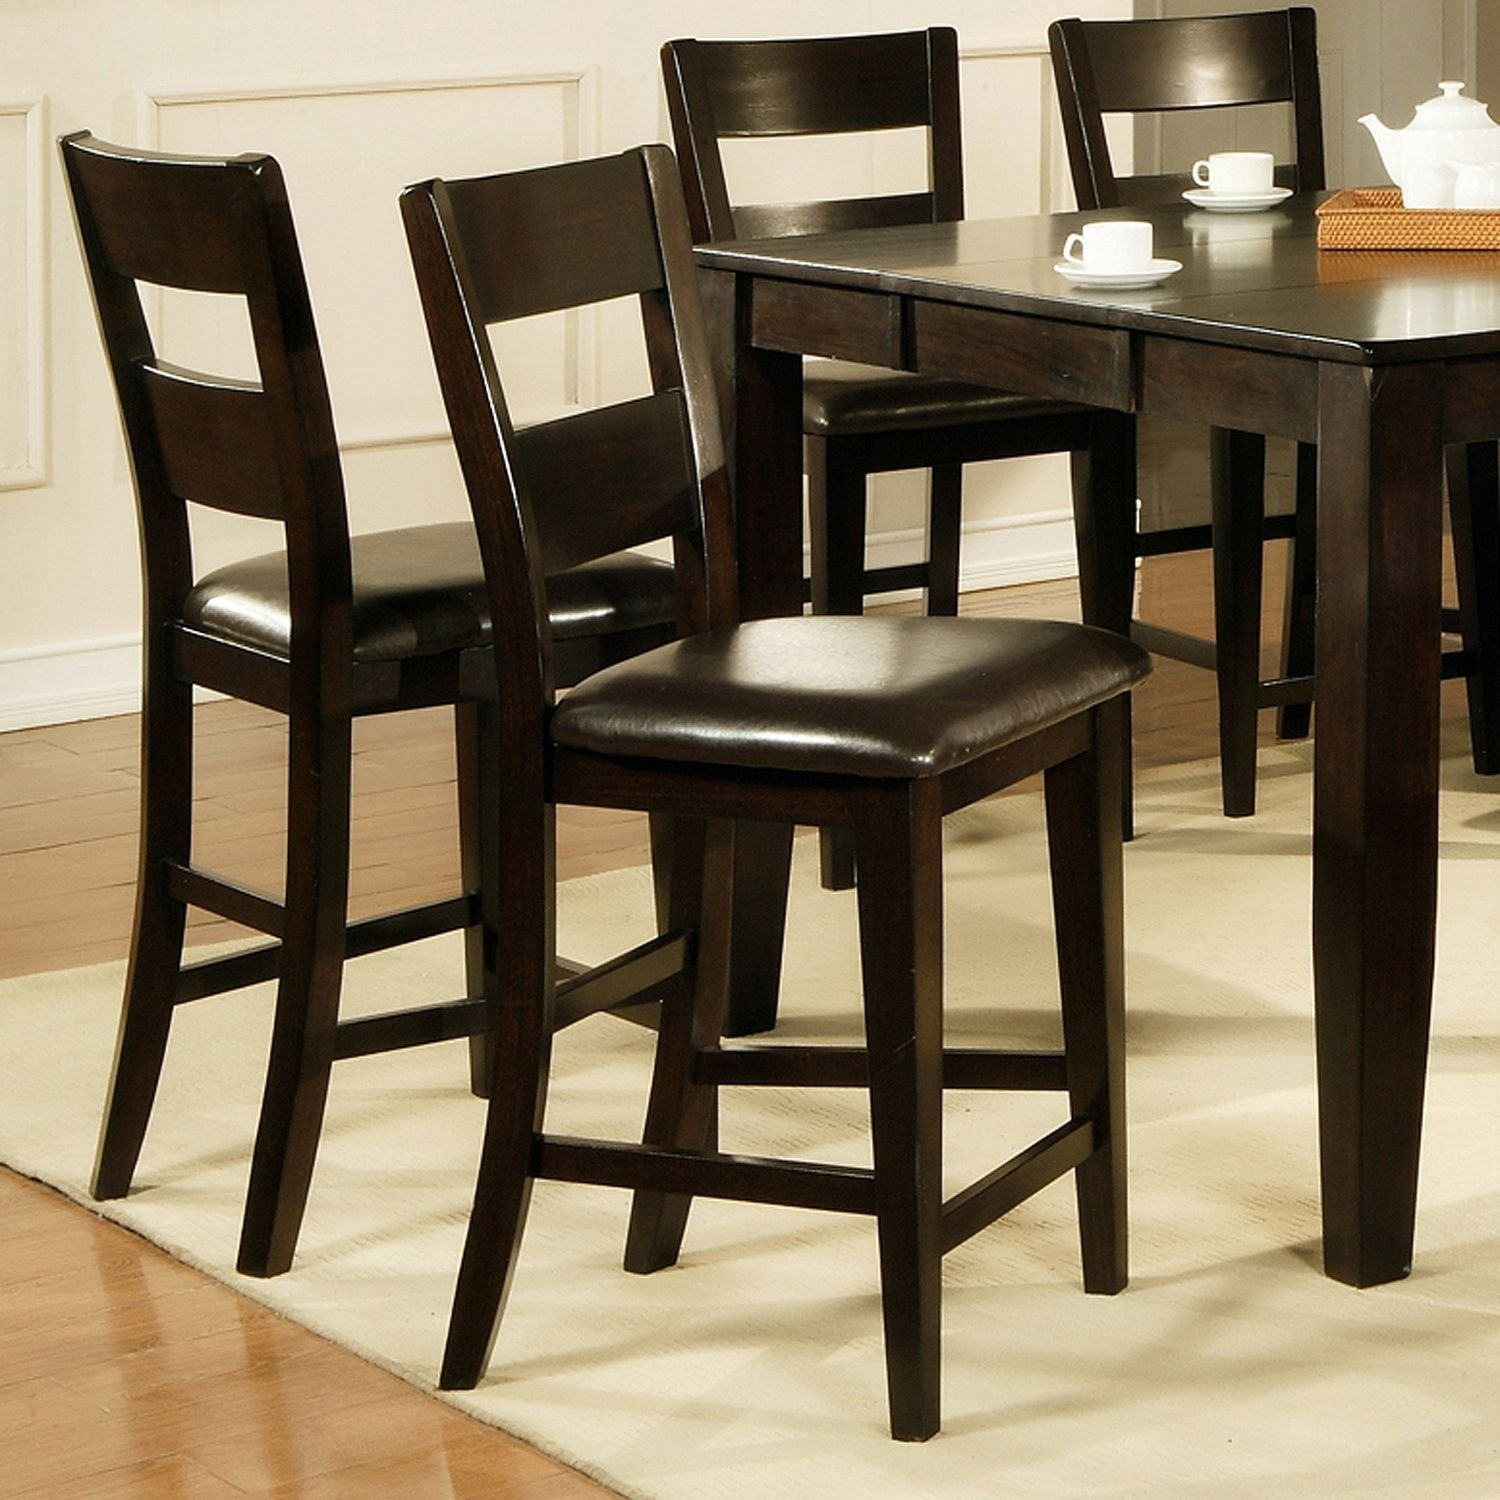 Marvelous Weston Counter Height Chairs Espresso 2 Pk Amazon Ca Home Interior And Landscaping Ologienasavecom